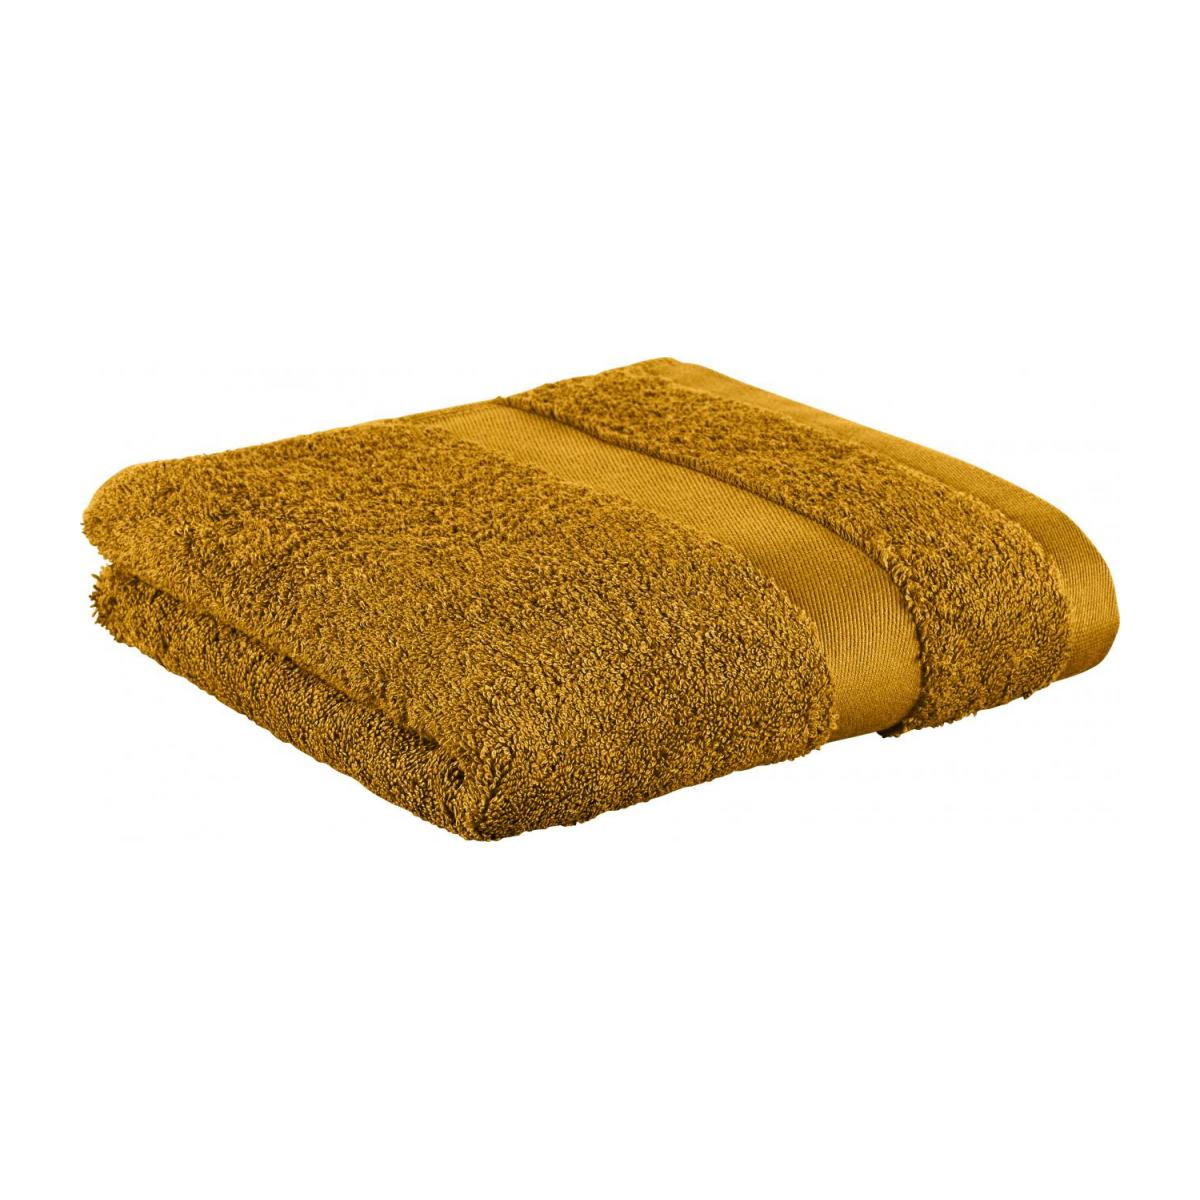 Towel made of cotton 50x100cm, yellow mustard n°1